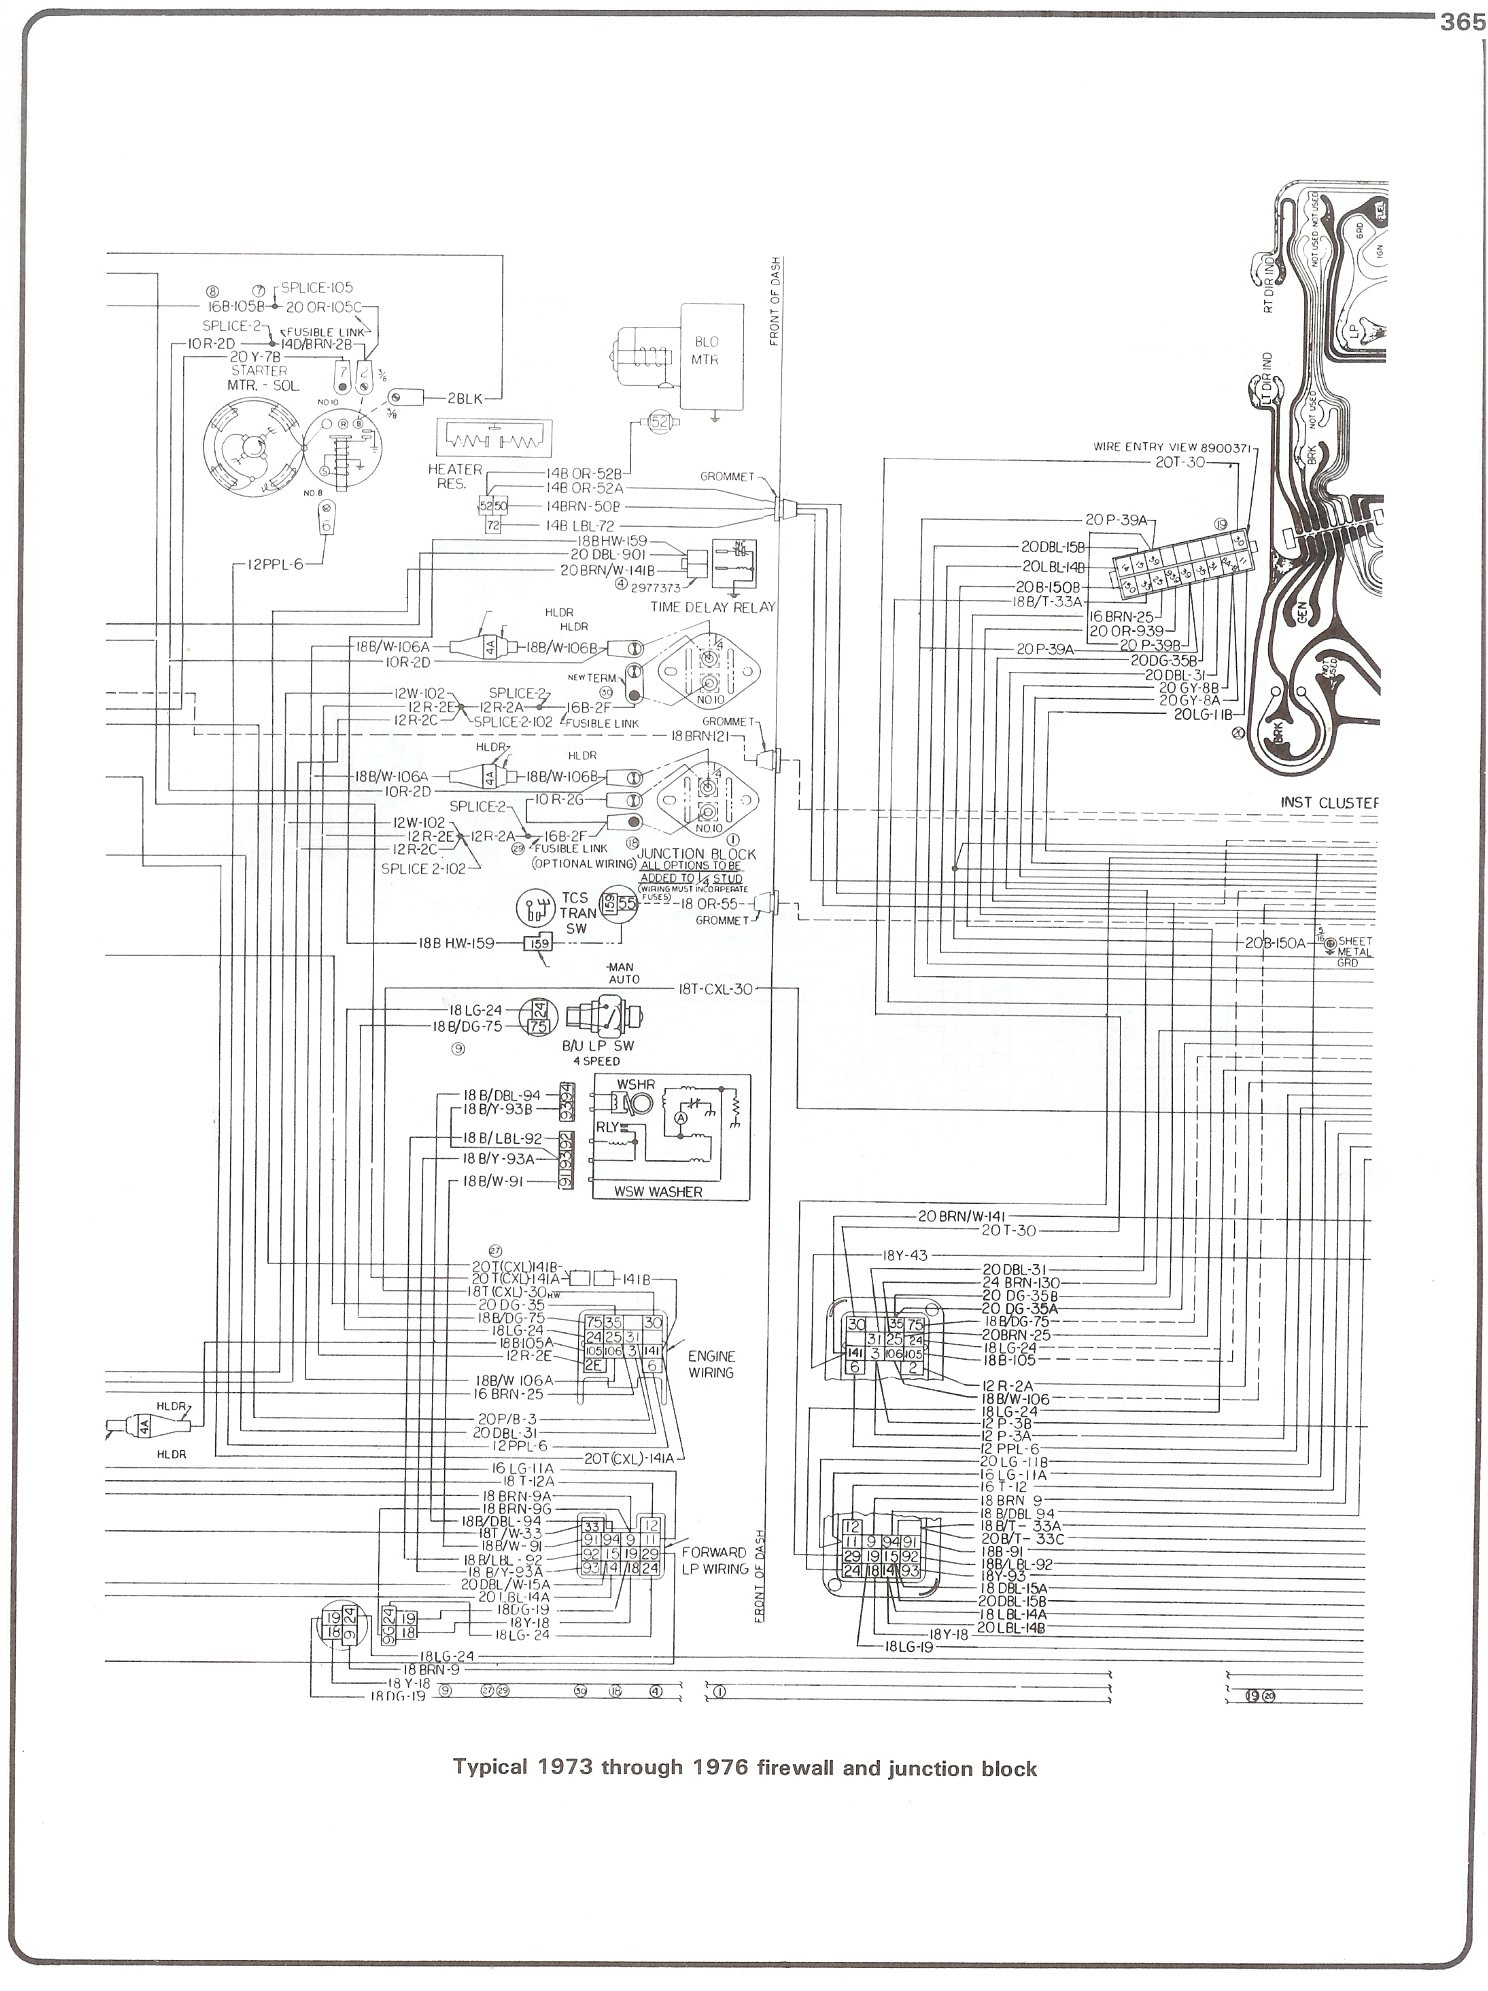 73 76_firewall_junct complete 73 87 wiring diagrams 1978 Chevy C10 Wiring-Diagram at honlapkeszites.co